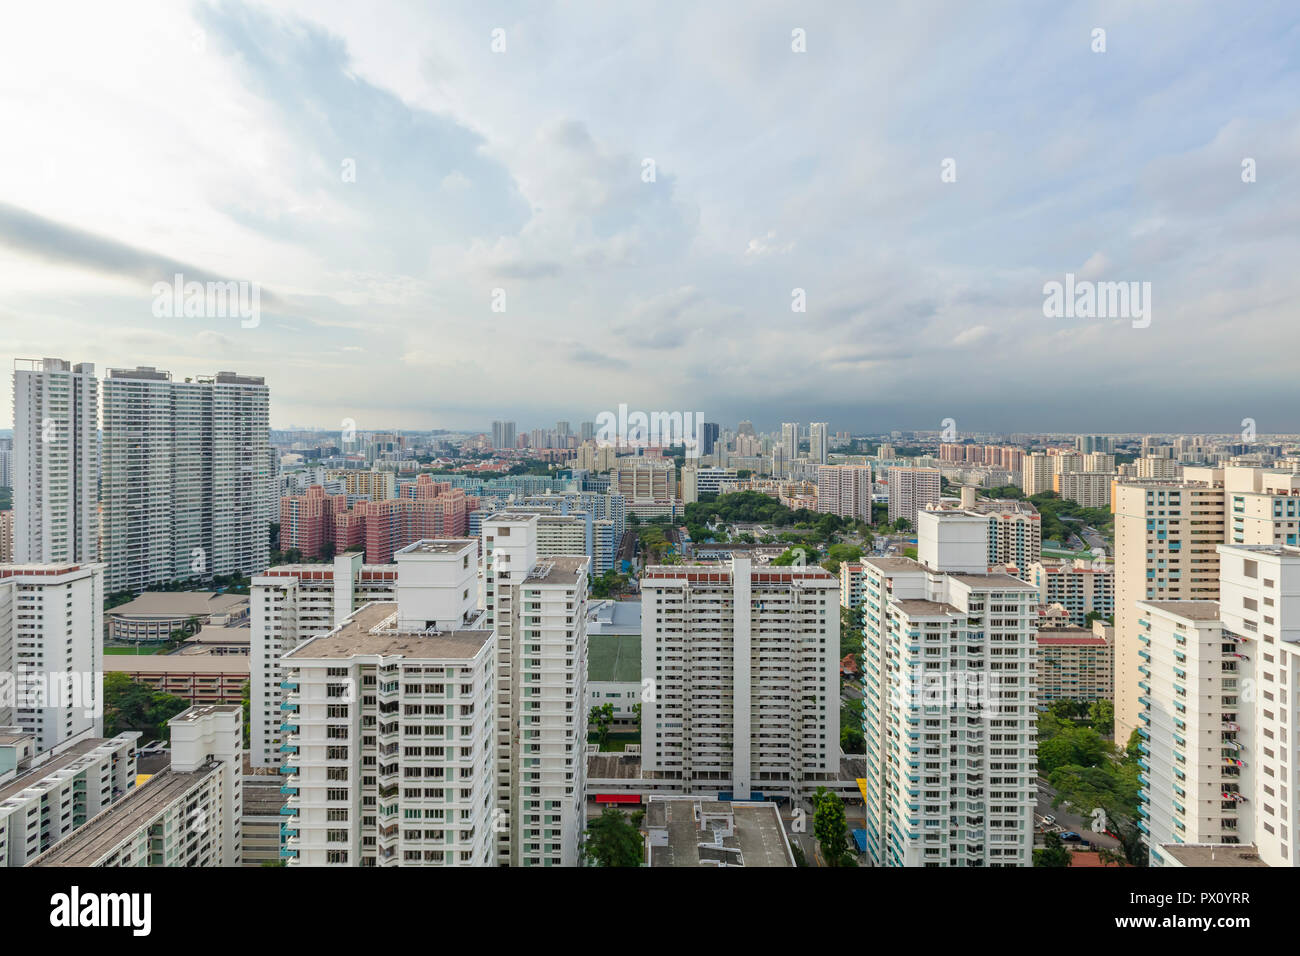 Cityscape view of HDB high-density housing blocks of Toa Payoh New Town, residential district in Singapore Stock Photo